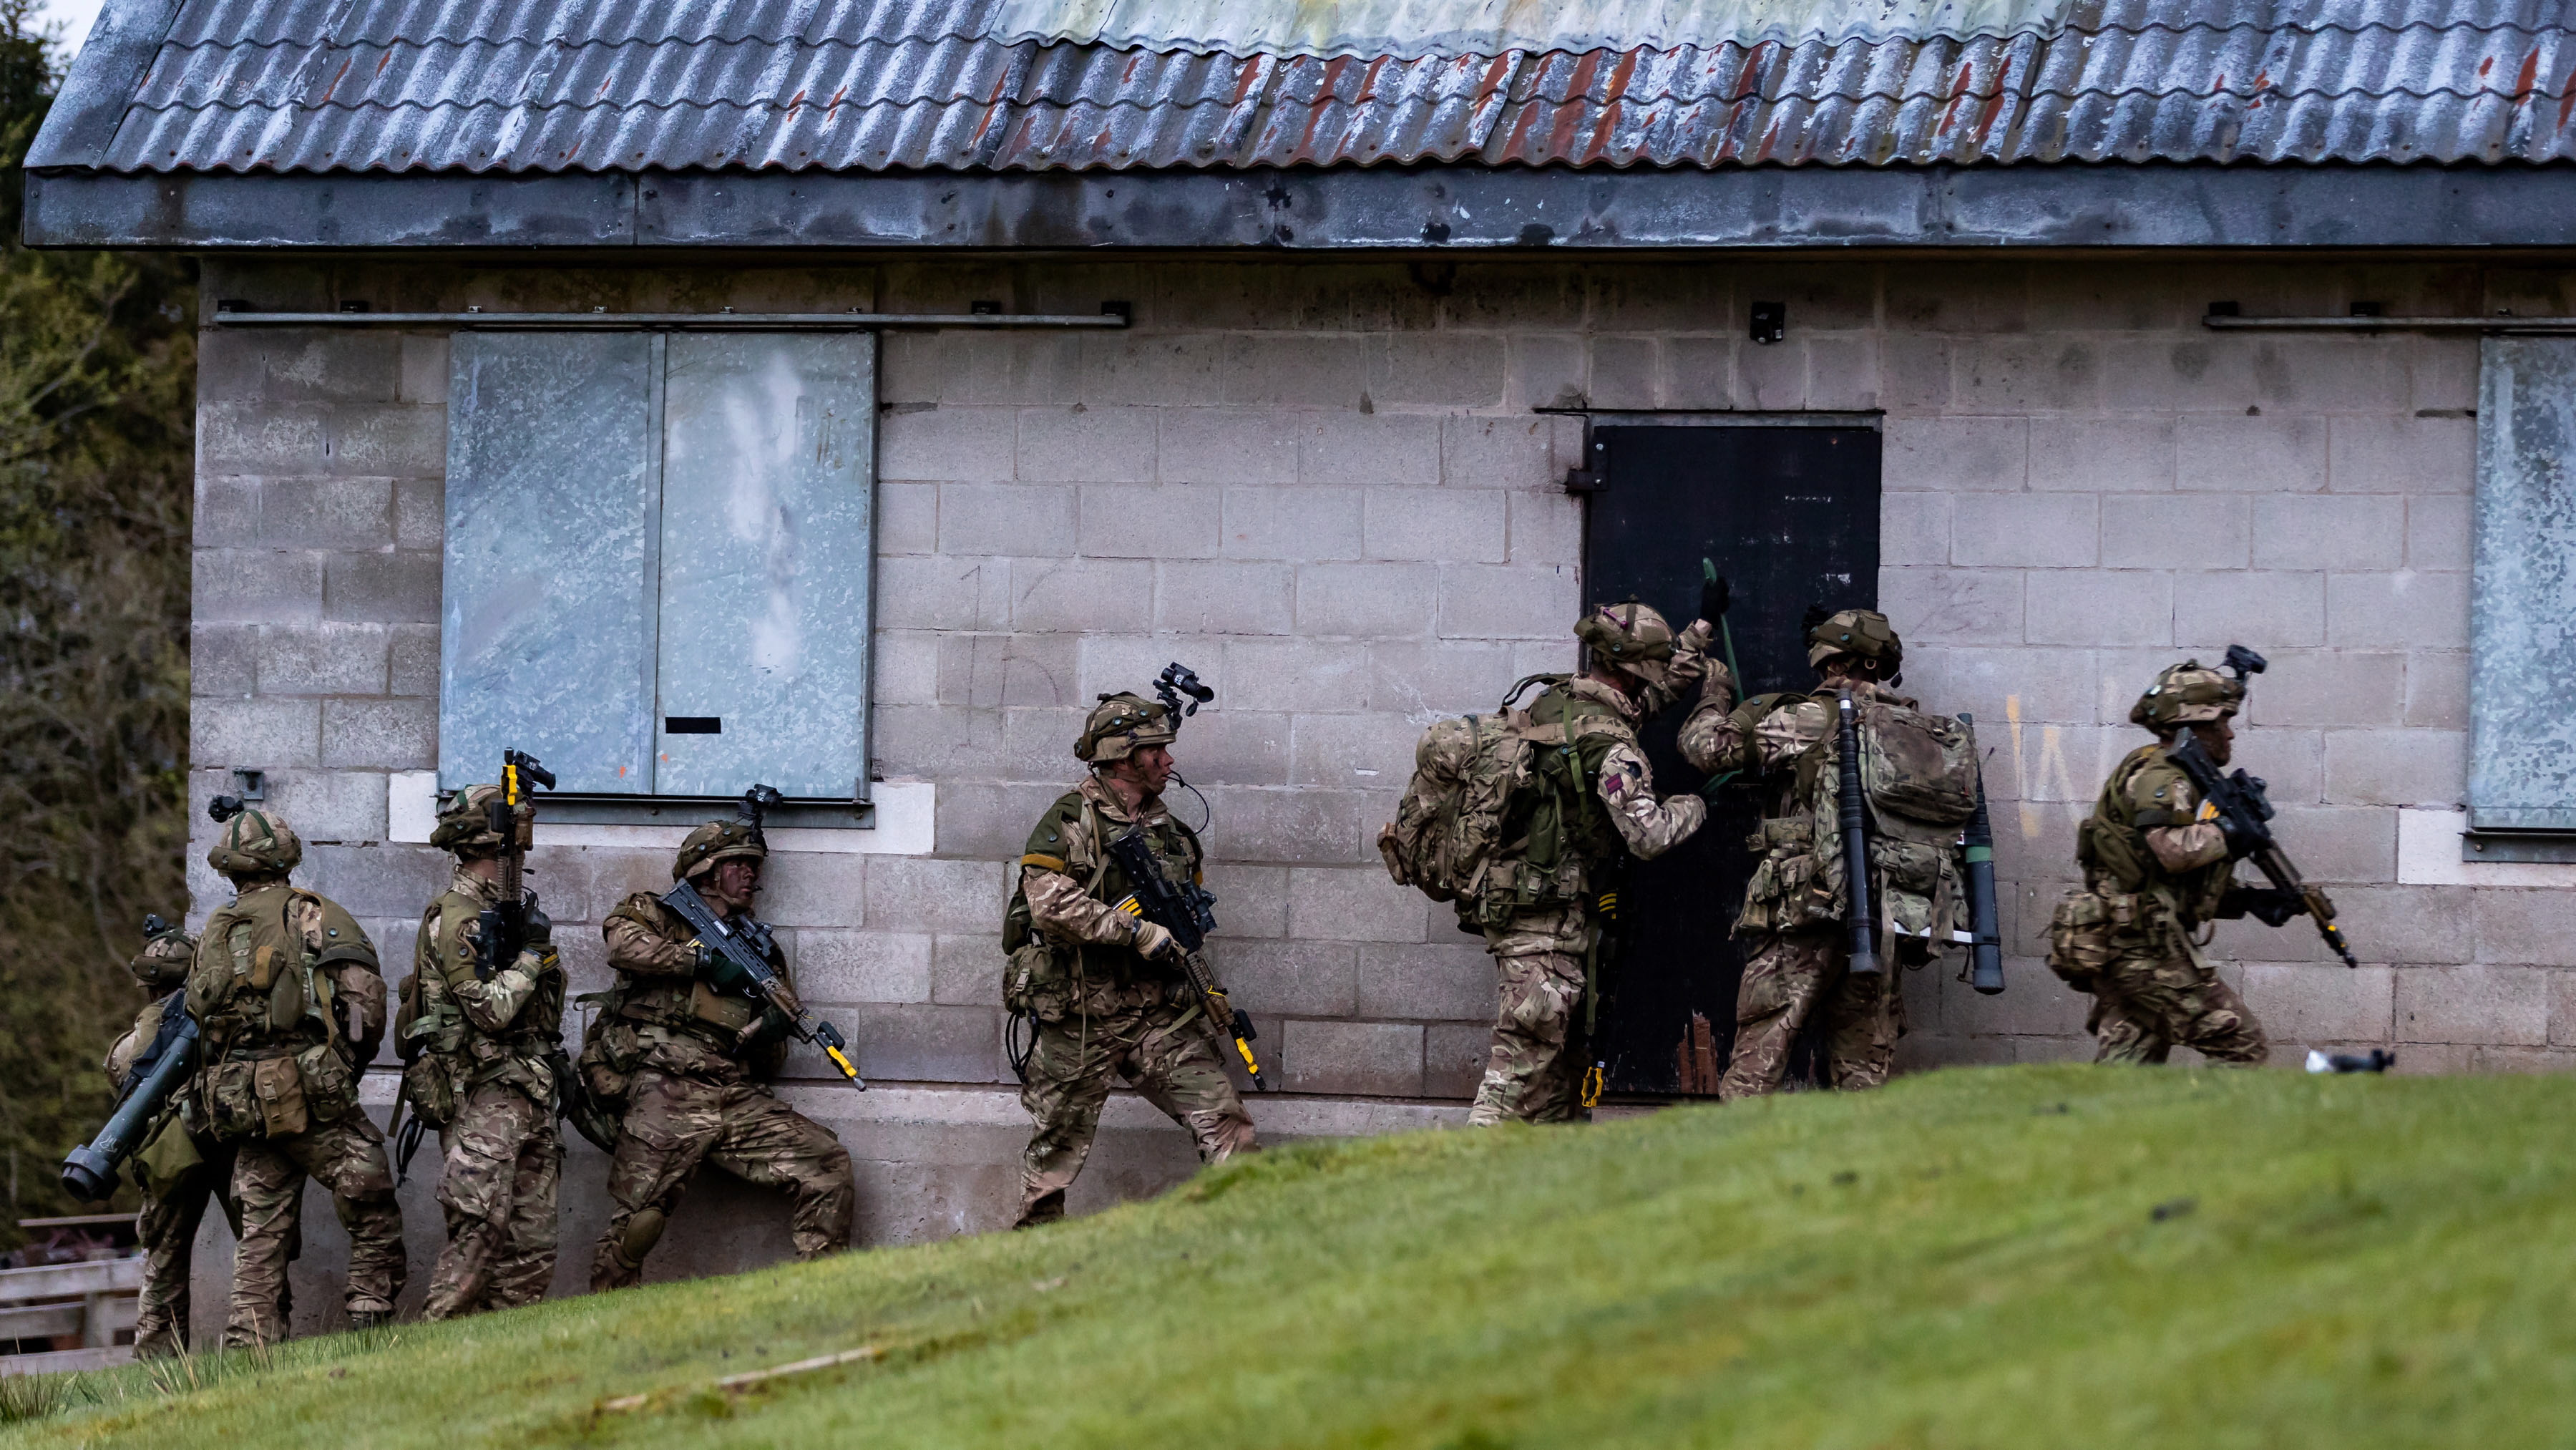 Royal Marines from 40 Commando taking part in Exercise Joint Warrior 2018